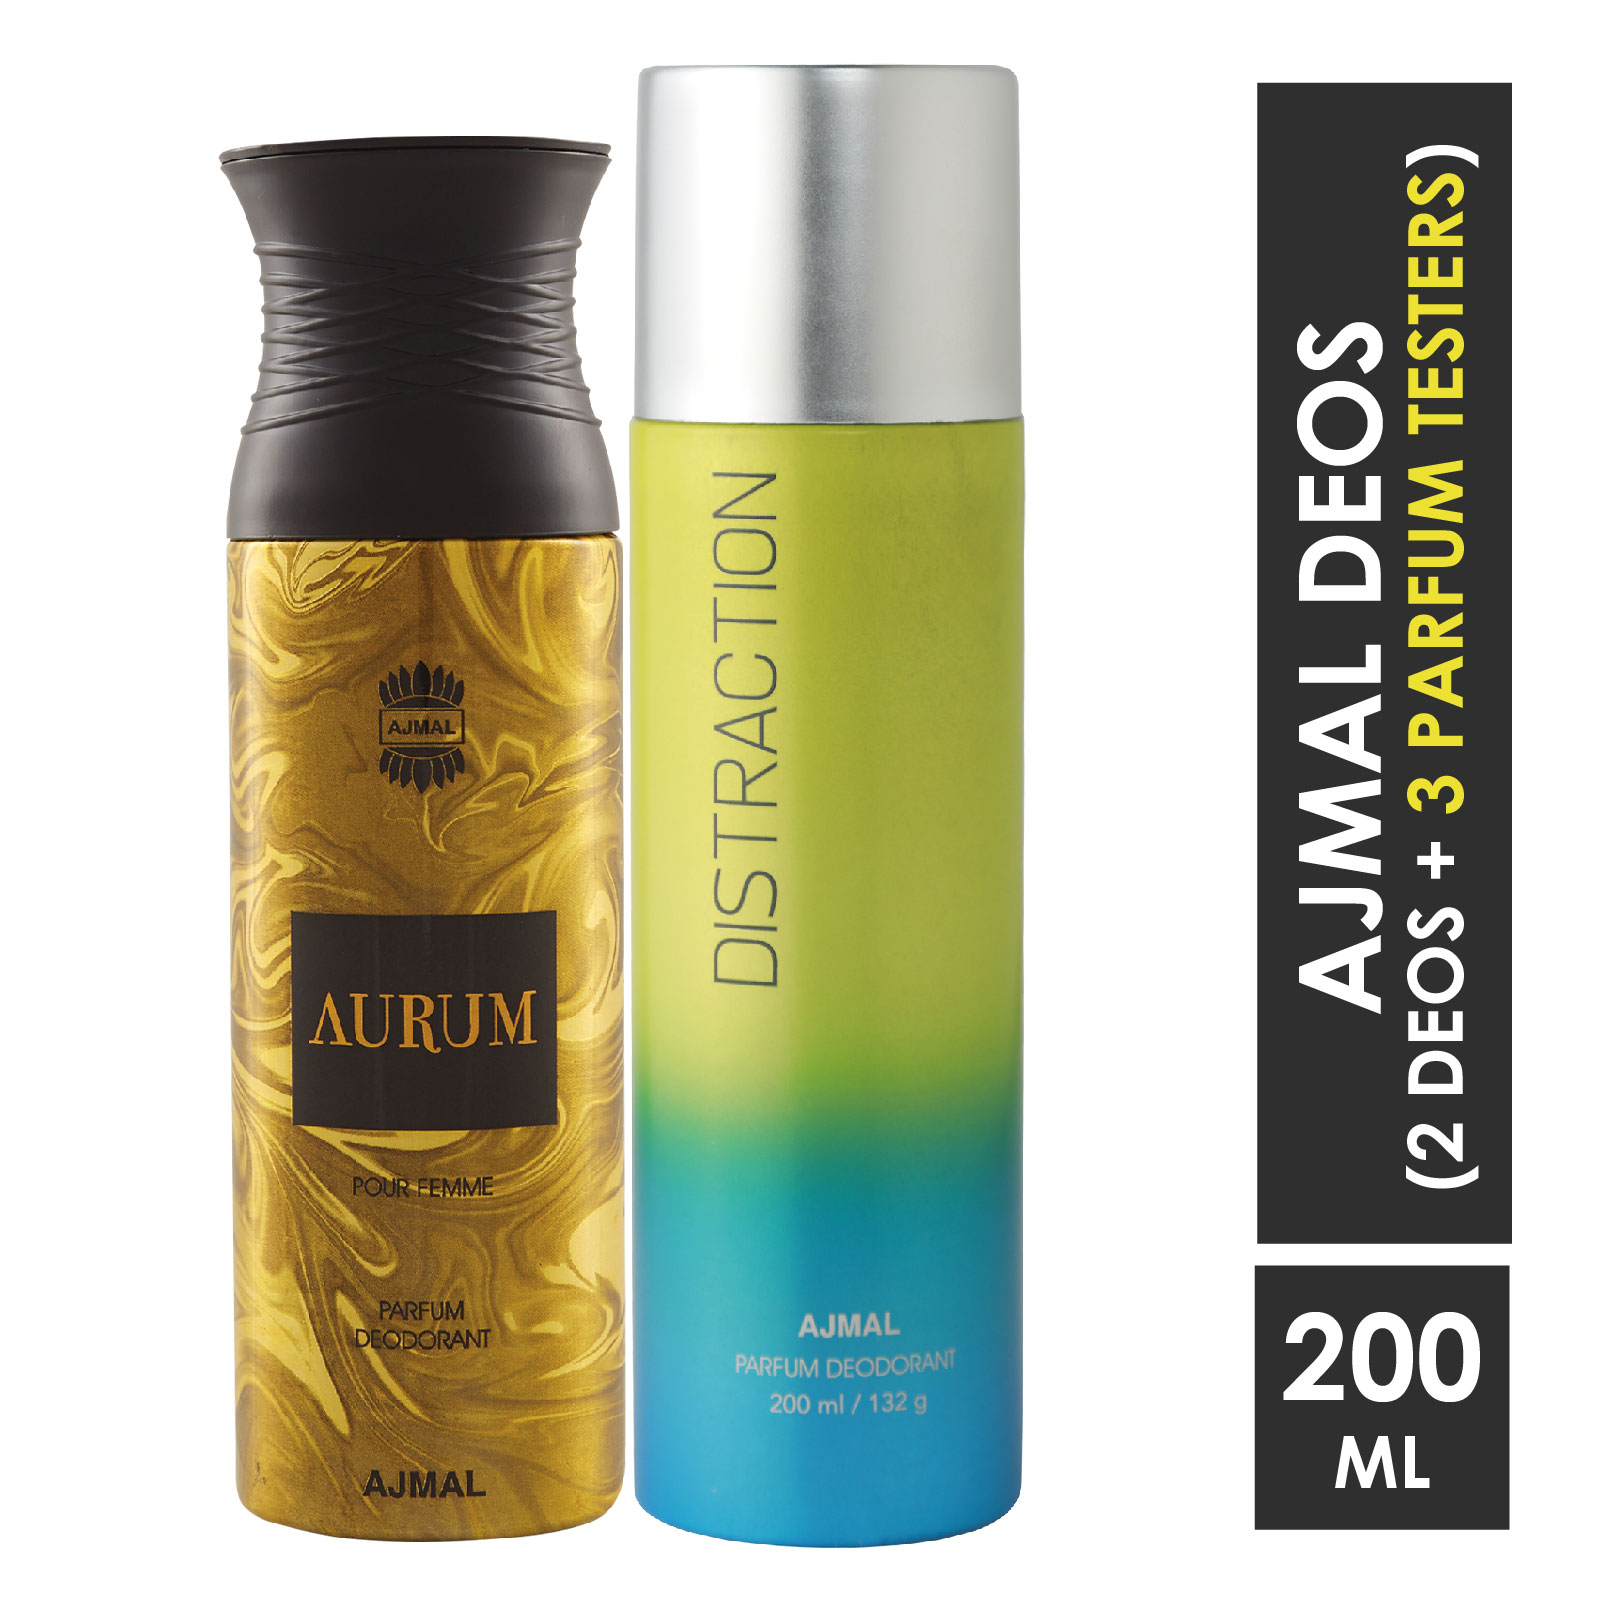 Ajmal | Ajmal Aurum Femme for Women and Distraction for Men & Women High Quality Deodorants each 200ML Combo pack of 2 (Total 400ML) + 3 Parfum Testers